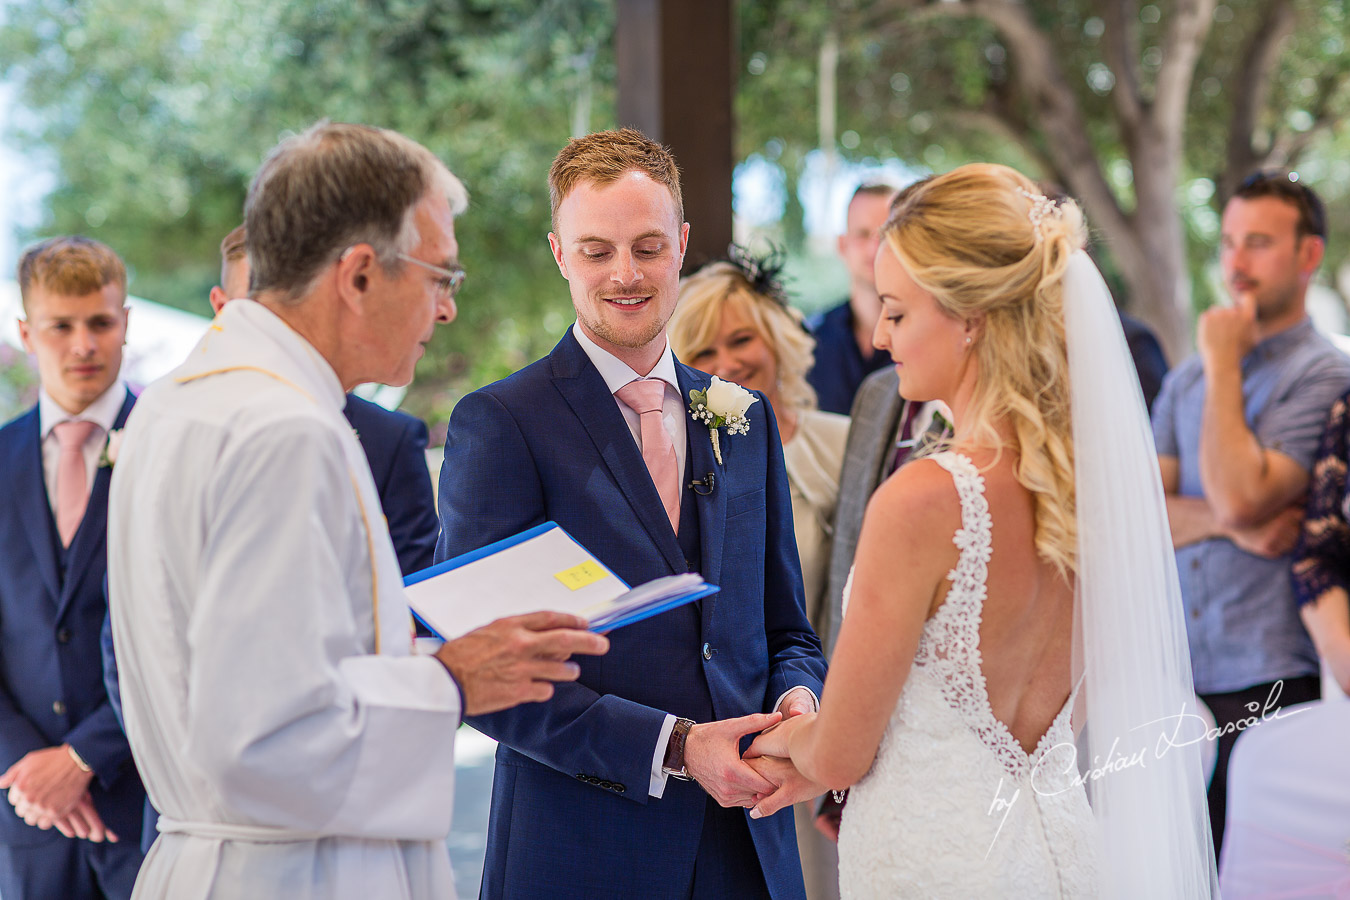 Beautiful wedding ceremony moments at Aphrodite Hills Resort in Cyprus, captured by photographer Cristian Dascalu.